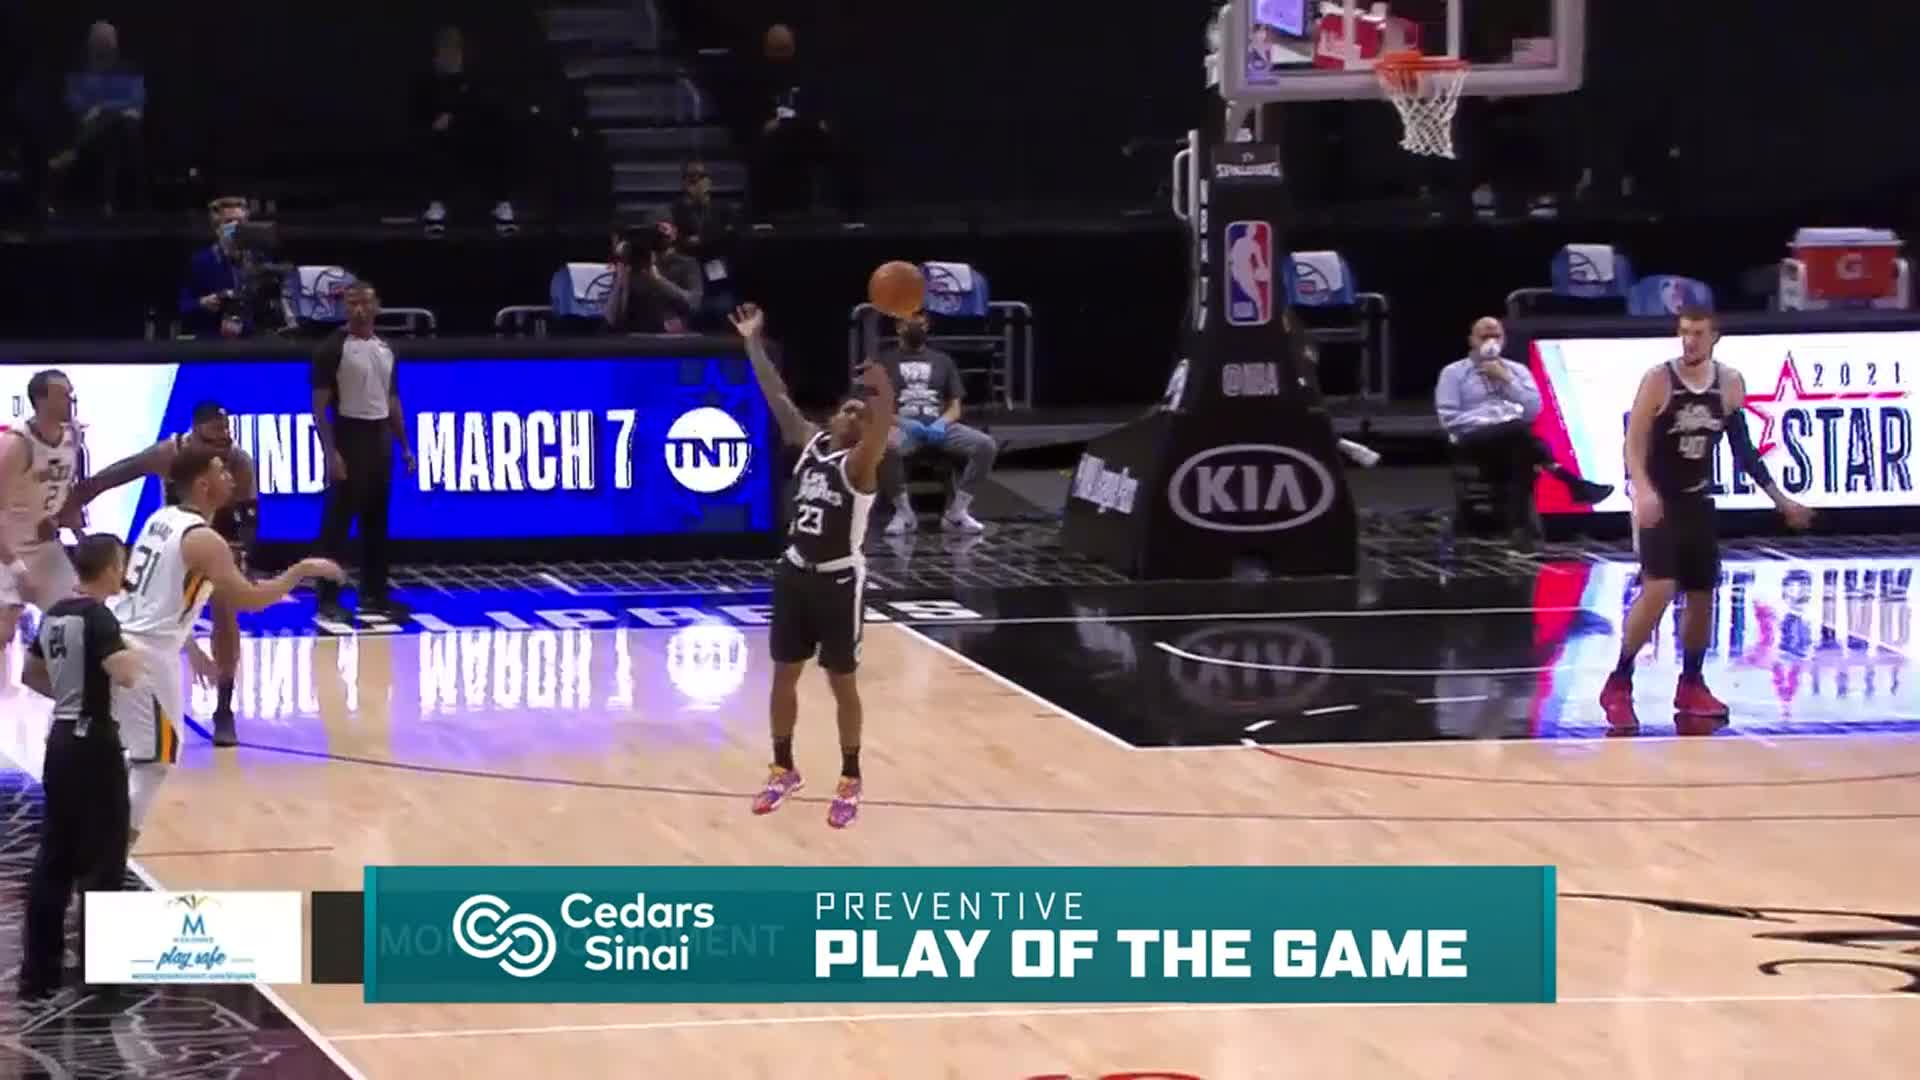 Cedars-Sinai Preventive Play of the Game | Clippers vs Jazz (2.19.21)